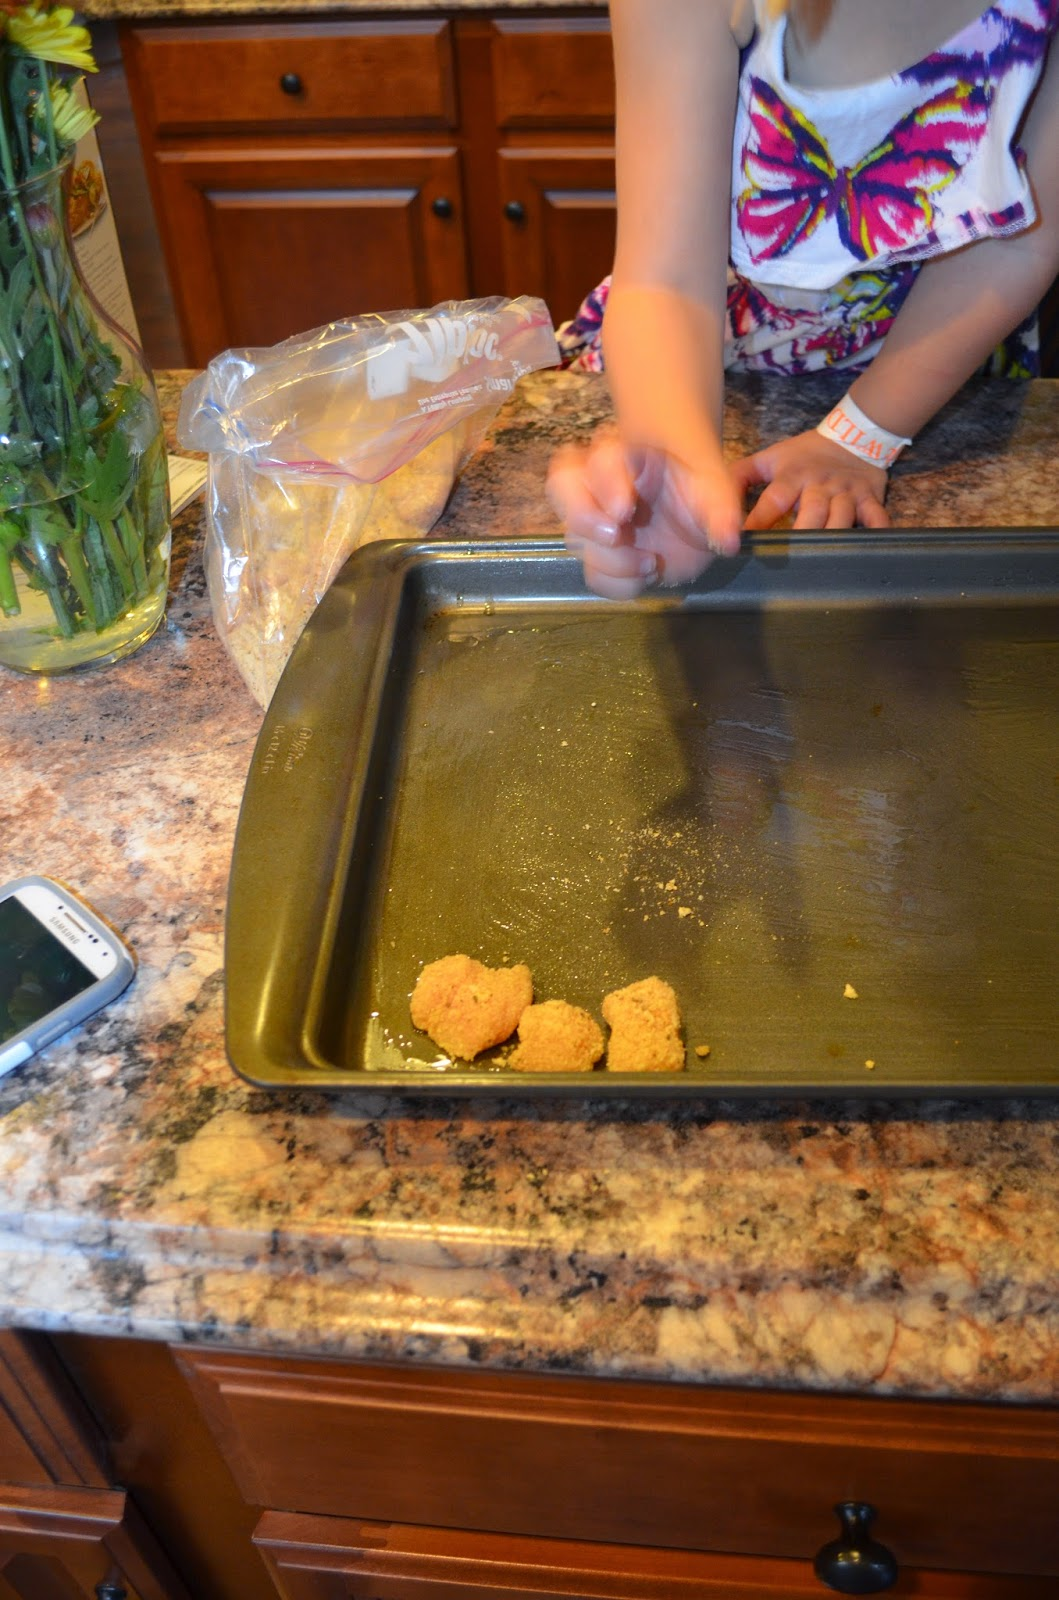 Erin Traill, diamond beachbody coach, clean eating with kids, healthy recipe, chicken nugget, kid approved recipe, fit mom, weight loss, weight loss success story,